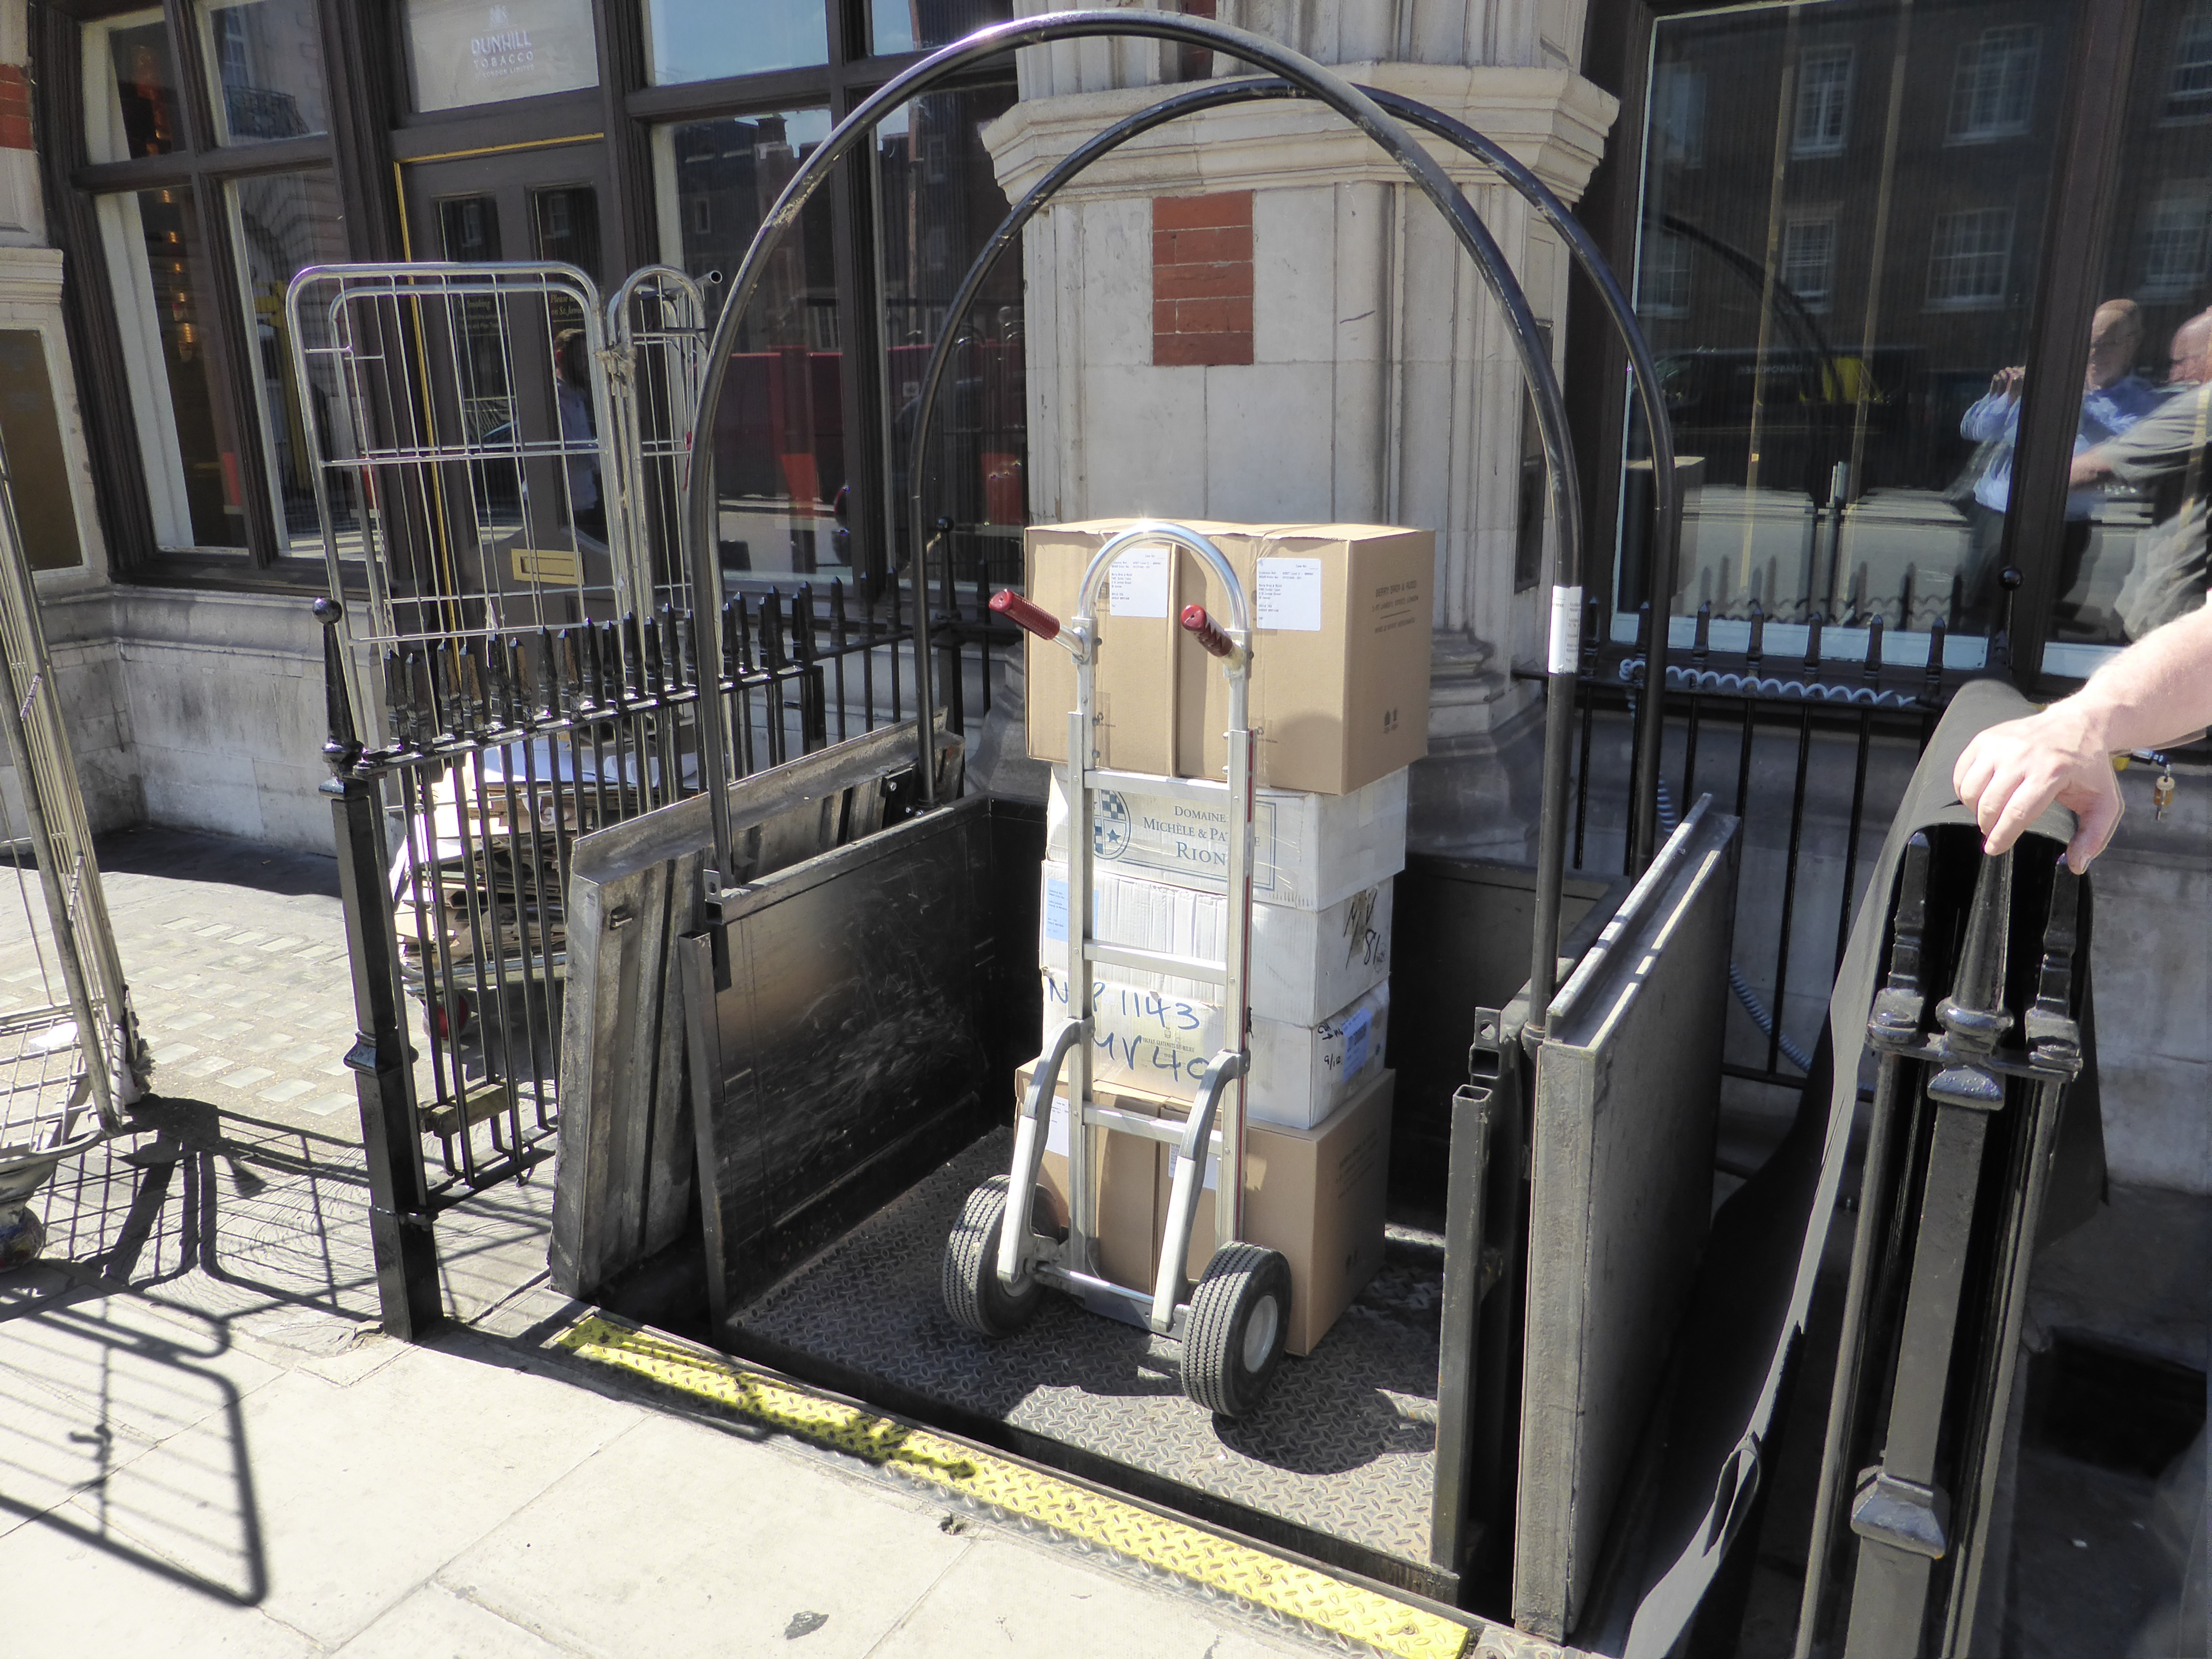 Goods Lift to transport deliveries from ground floor to lower ground floor.